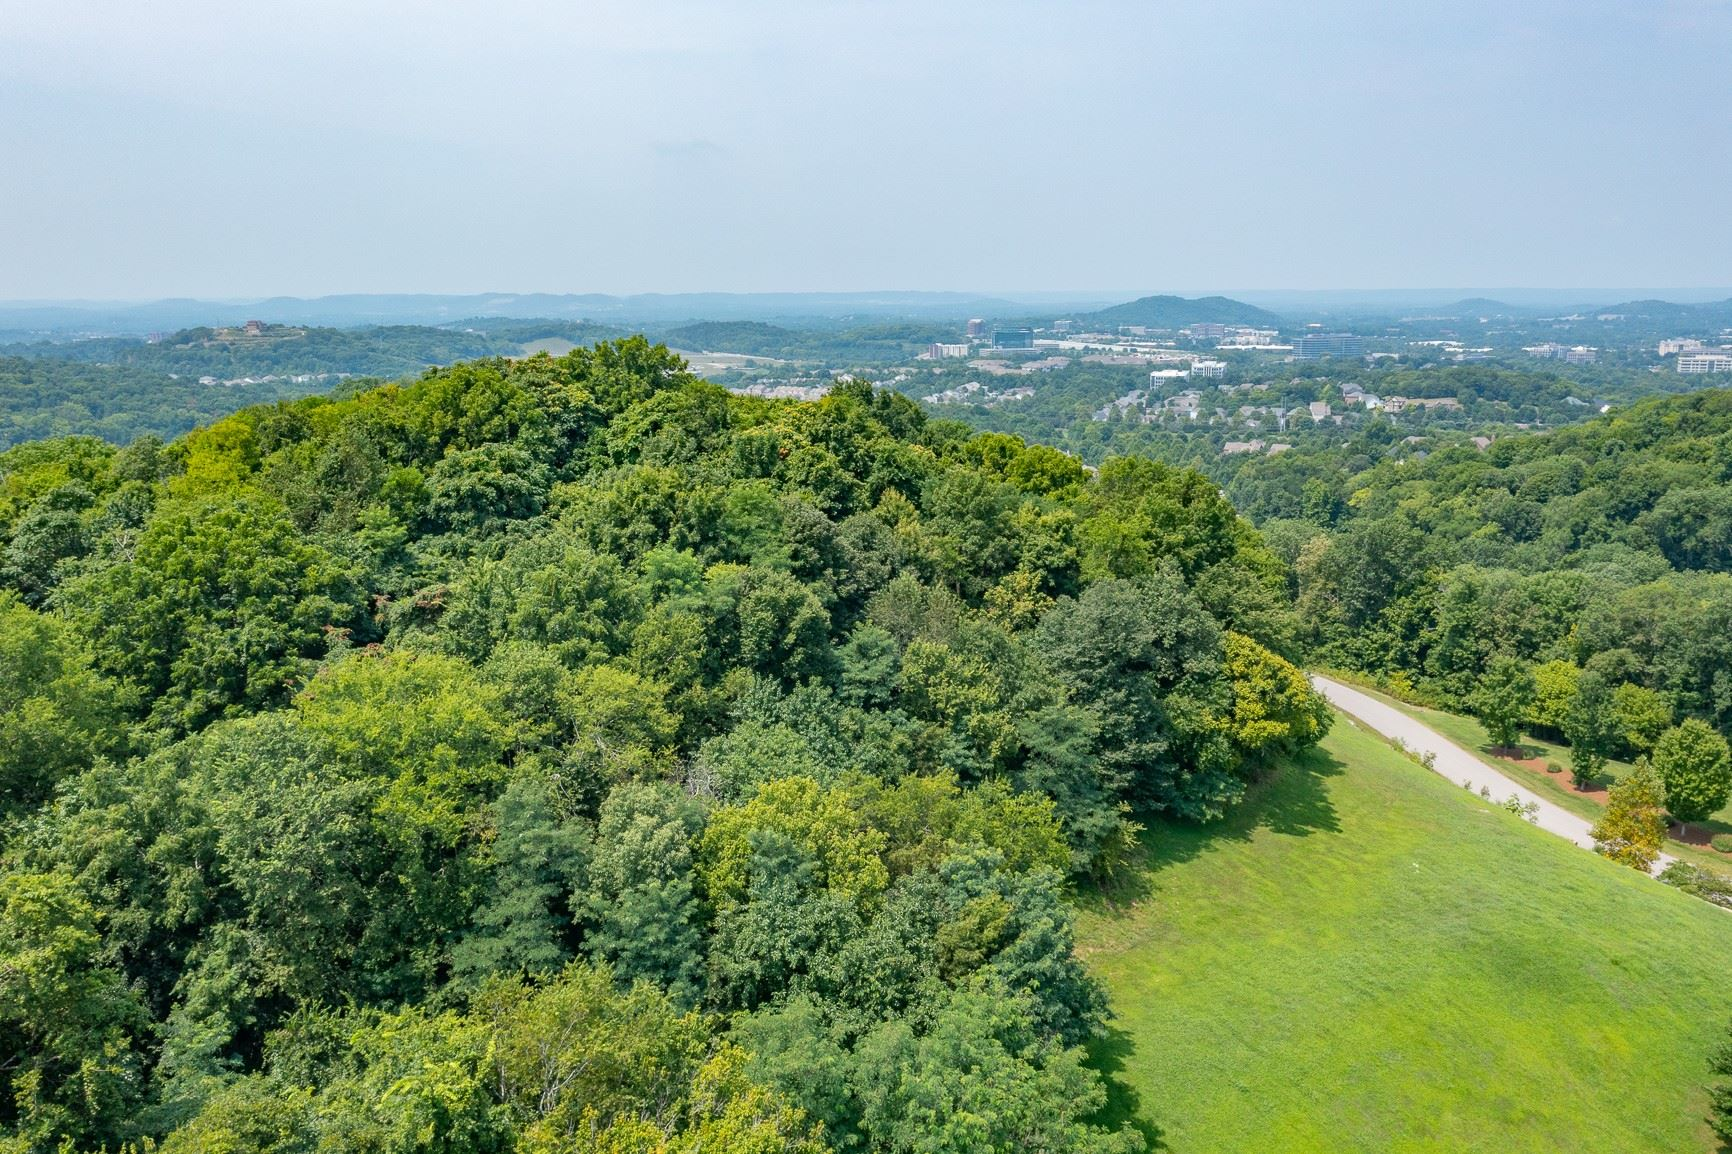 Photo of 1229 Road of the Round Table, Franklin, TN 37067 (MLS # 2276492)